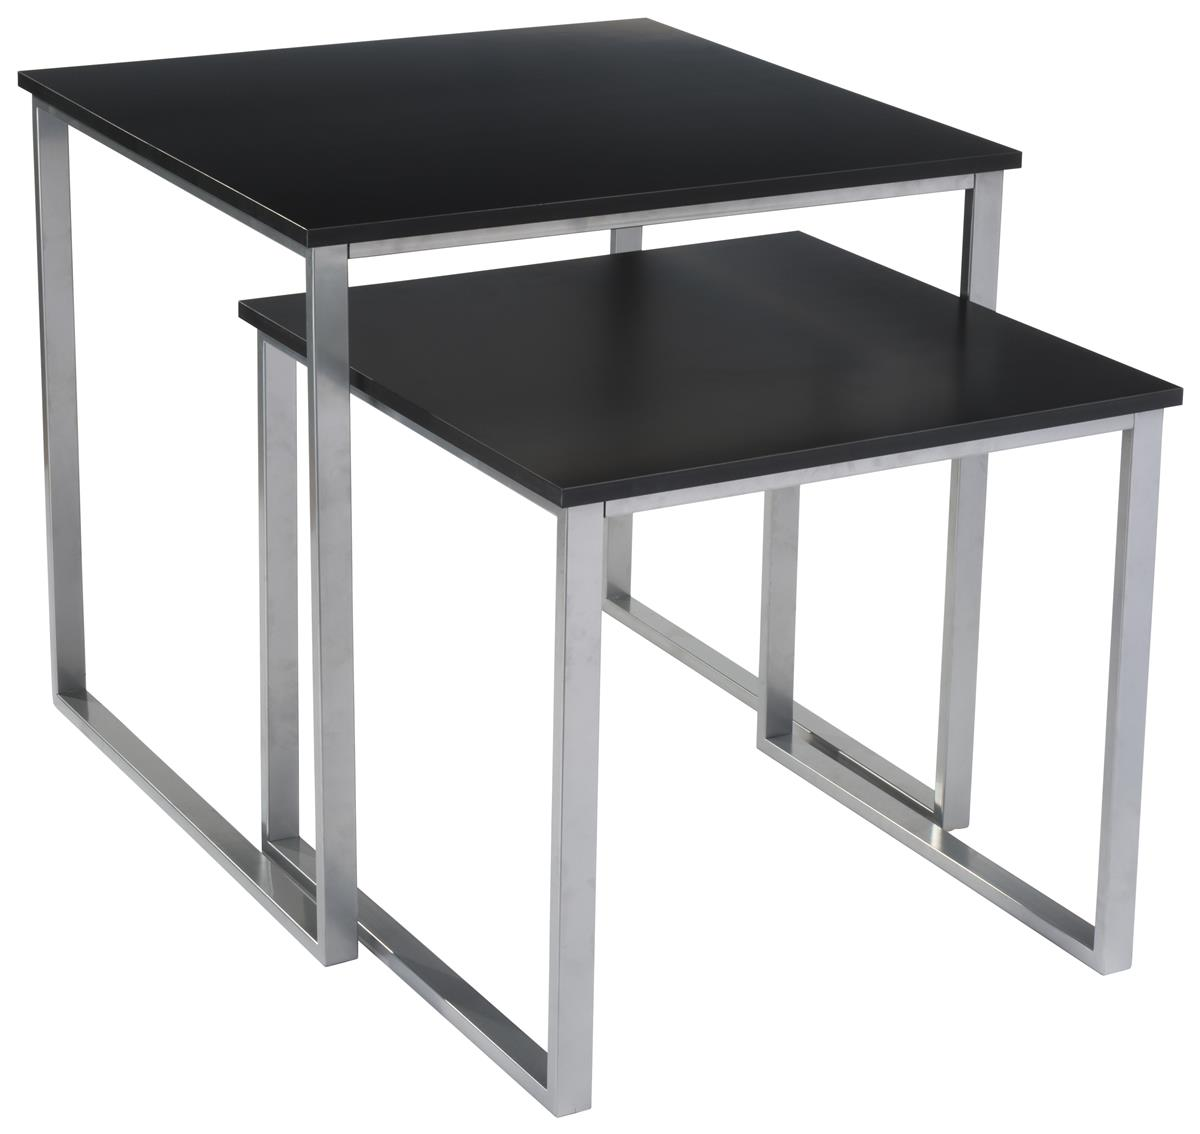 Black Metal Nesting Tables Nesting Display Table Set Set Of 2 Black Silver